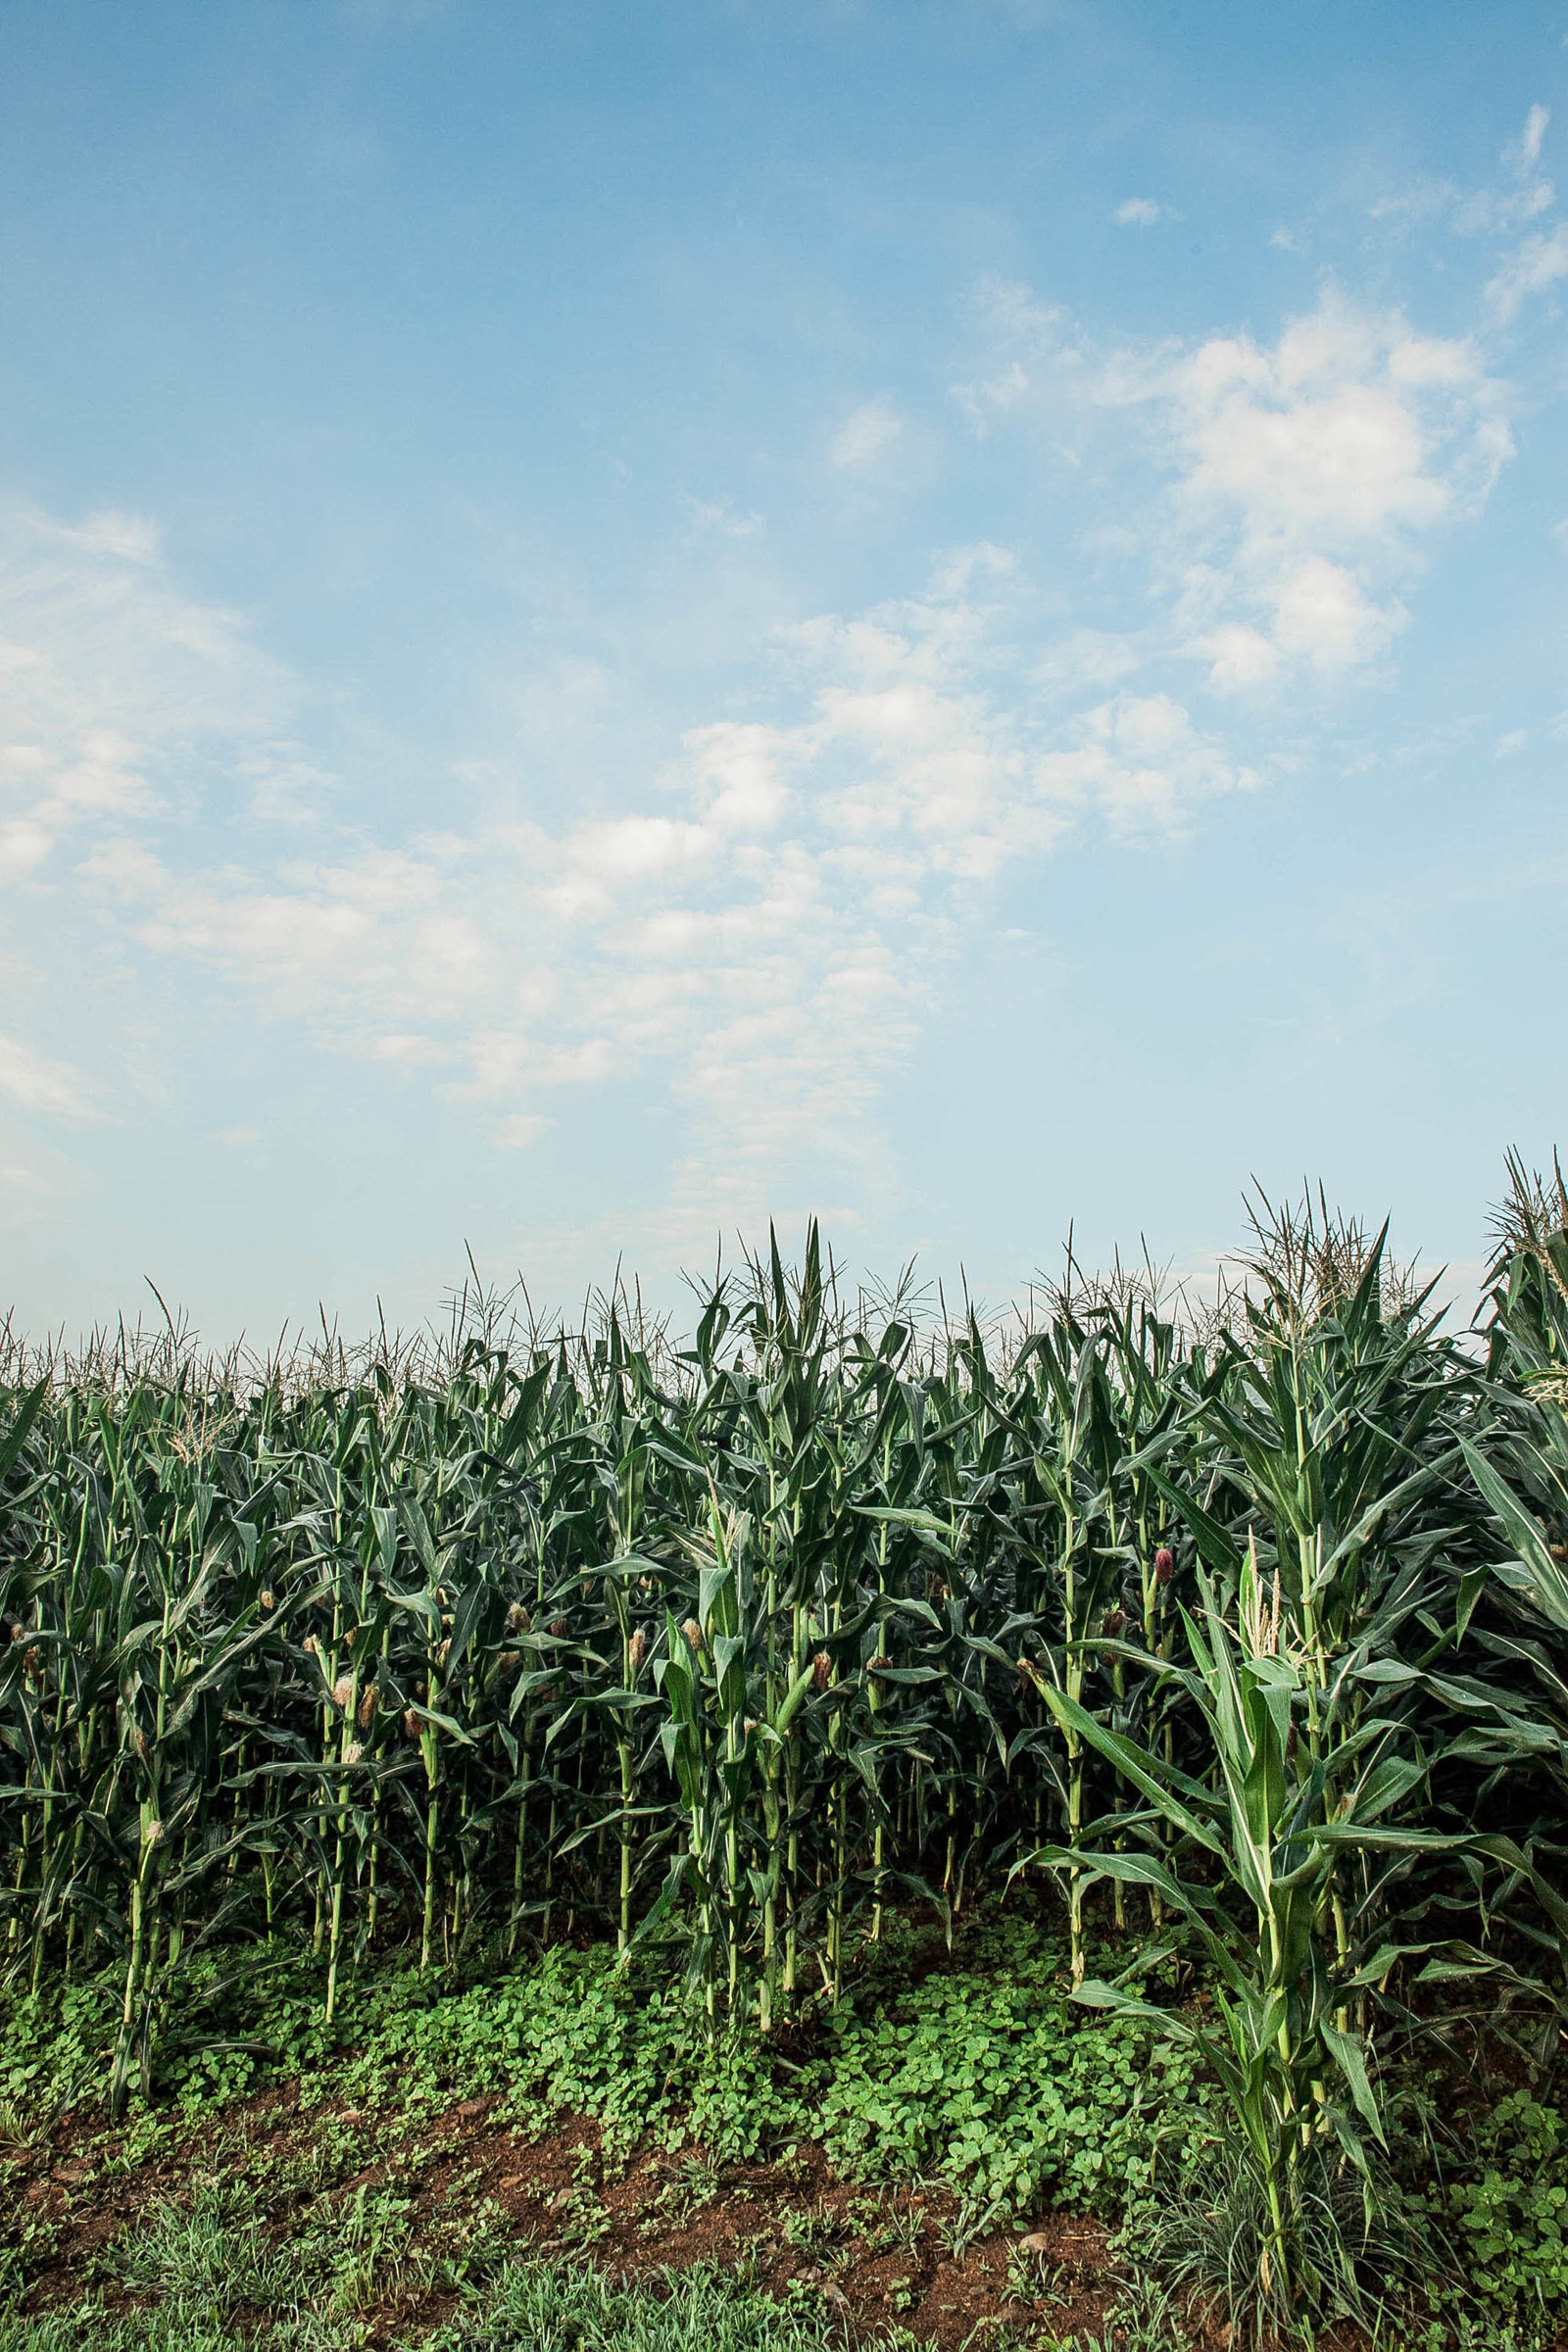 corn-pennsylvania-countryside-kate-timbers-photography-1139